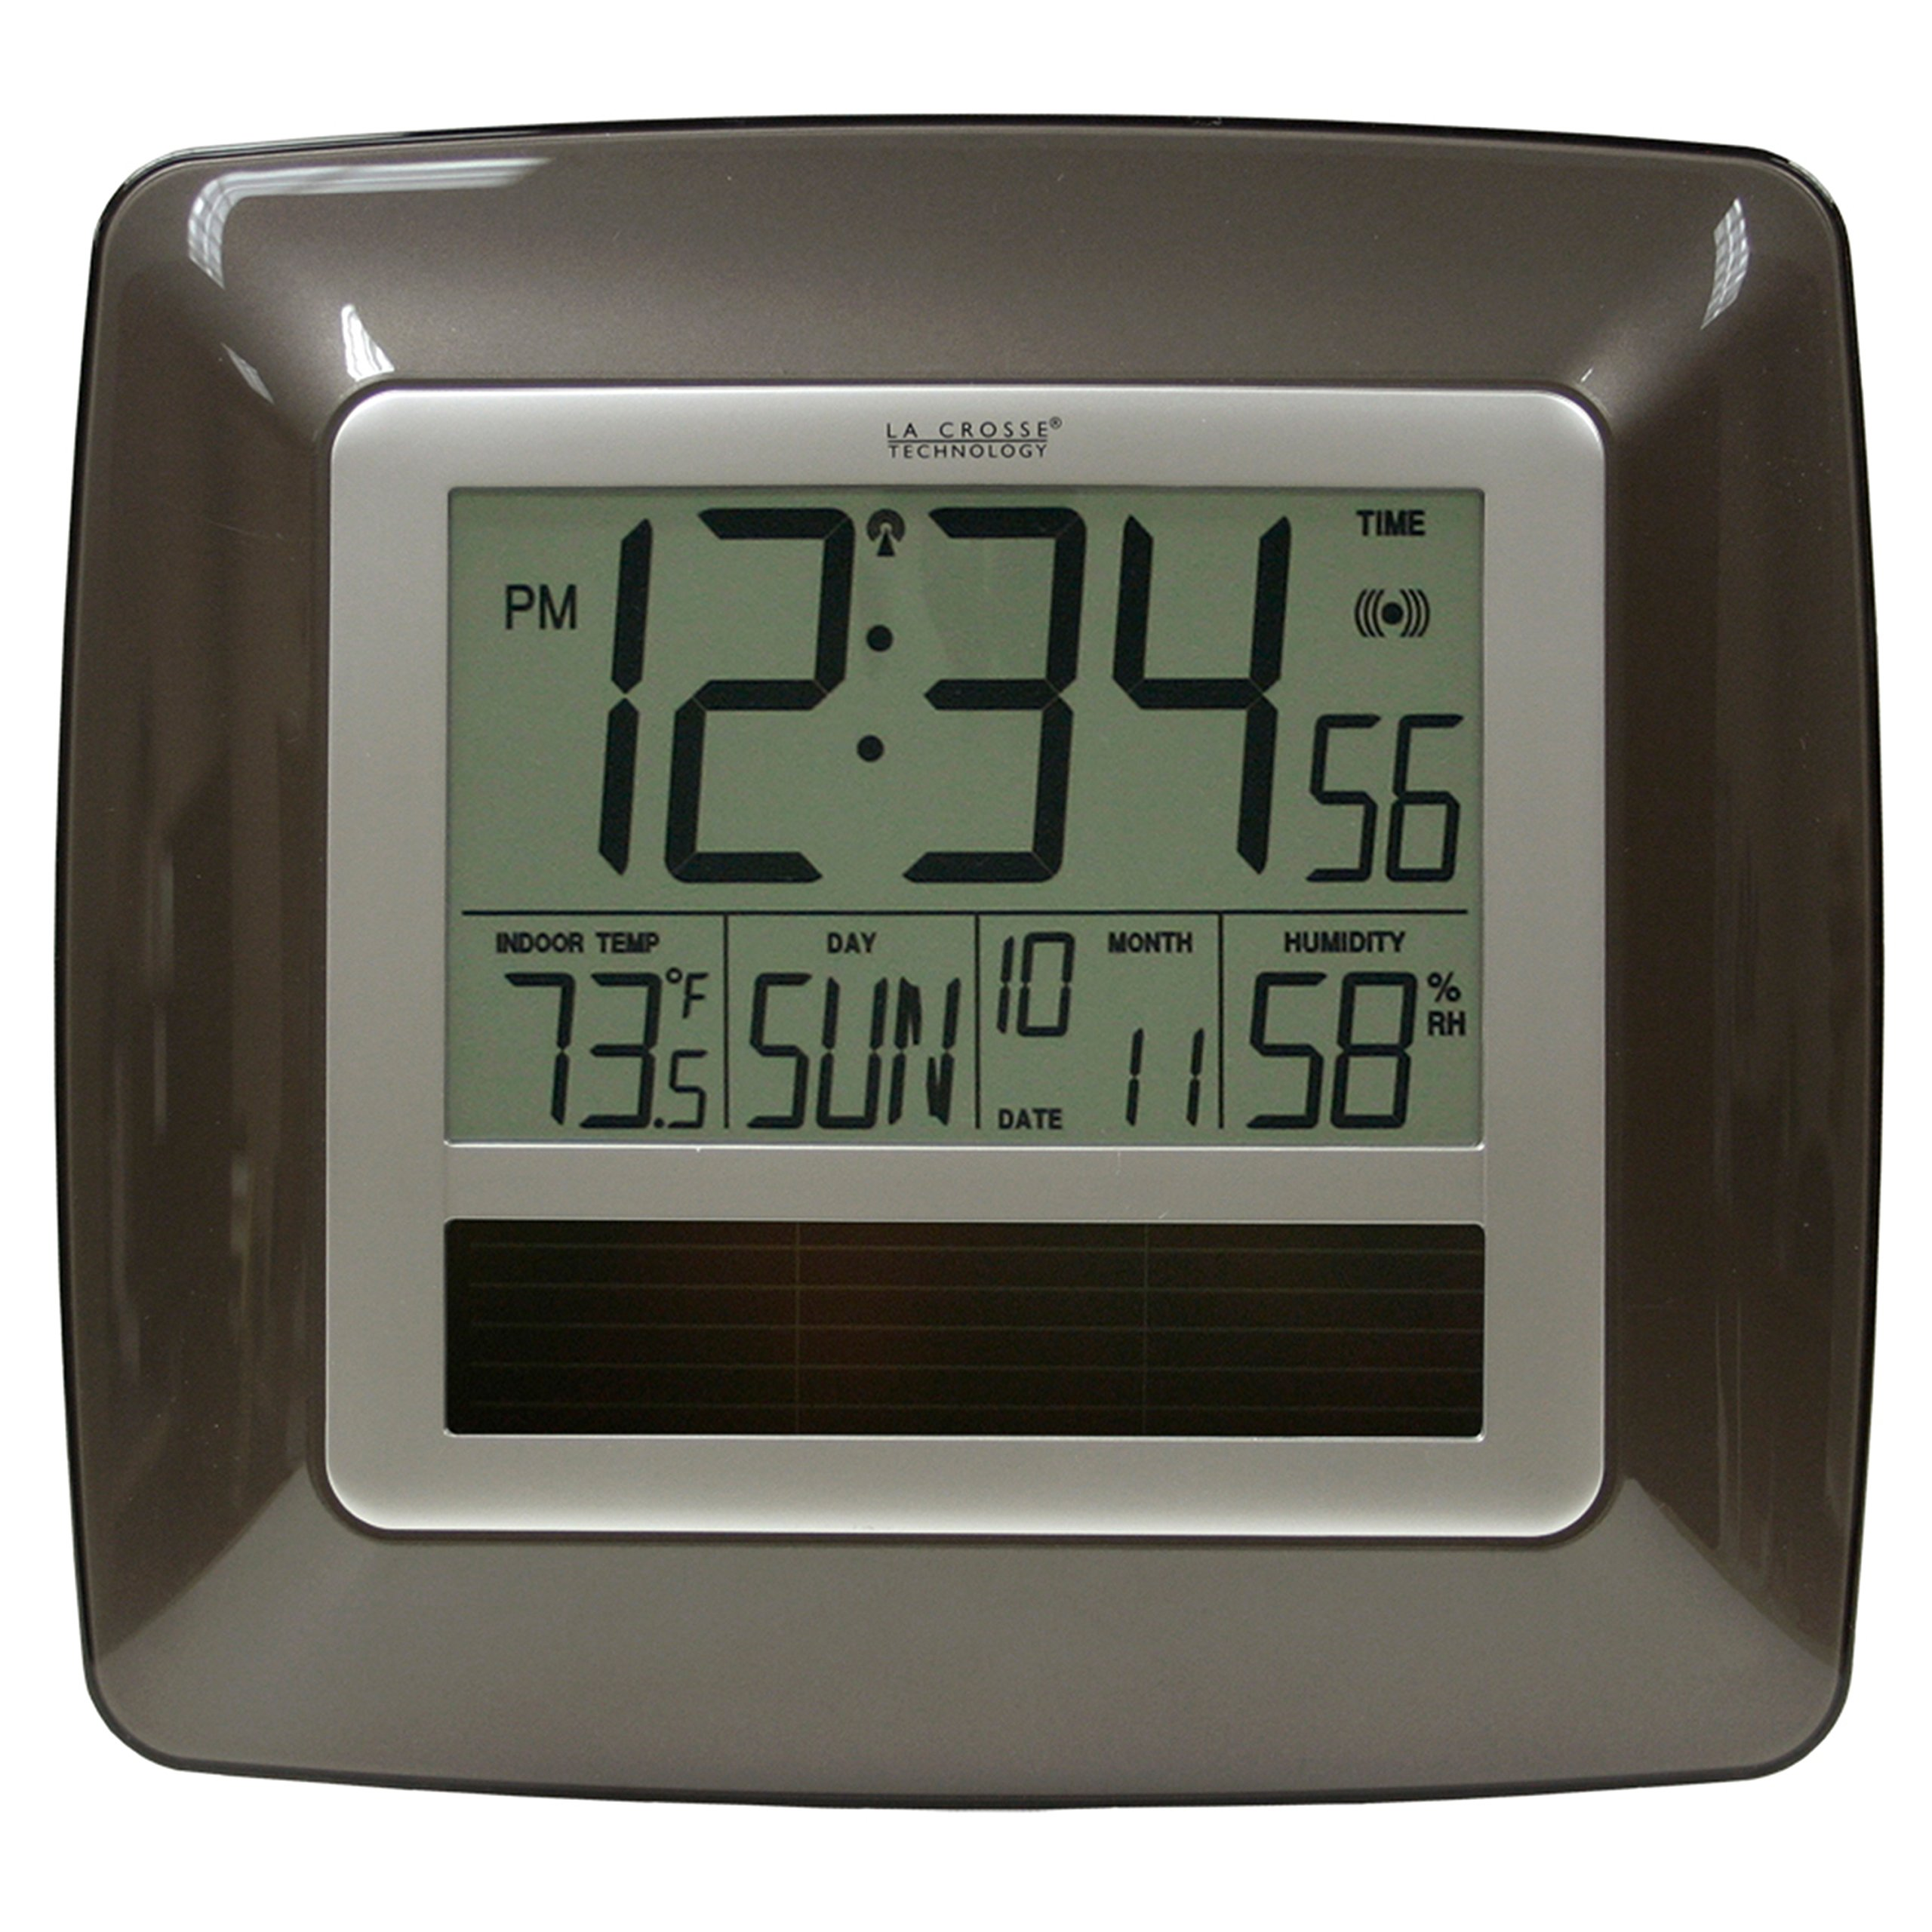 La Crosse Technology WT-8112U Solar Atomic Digital Clock with Indoor Temperature, Humidity